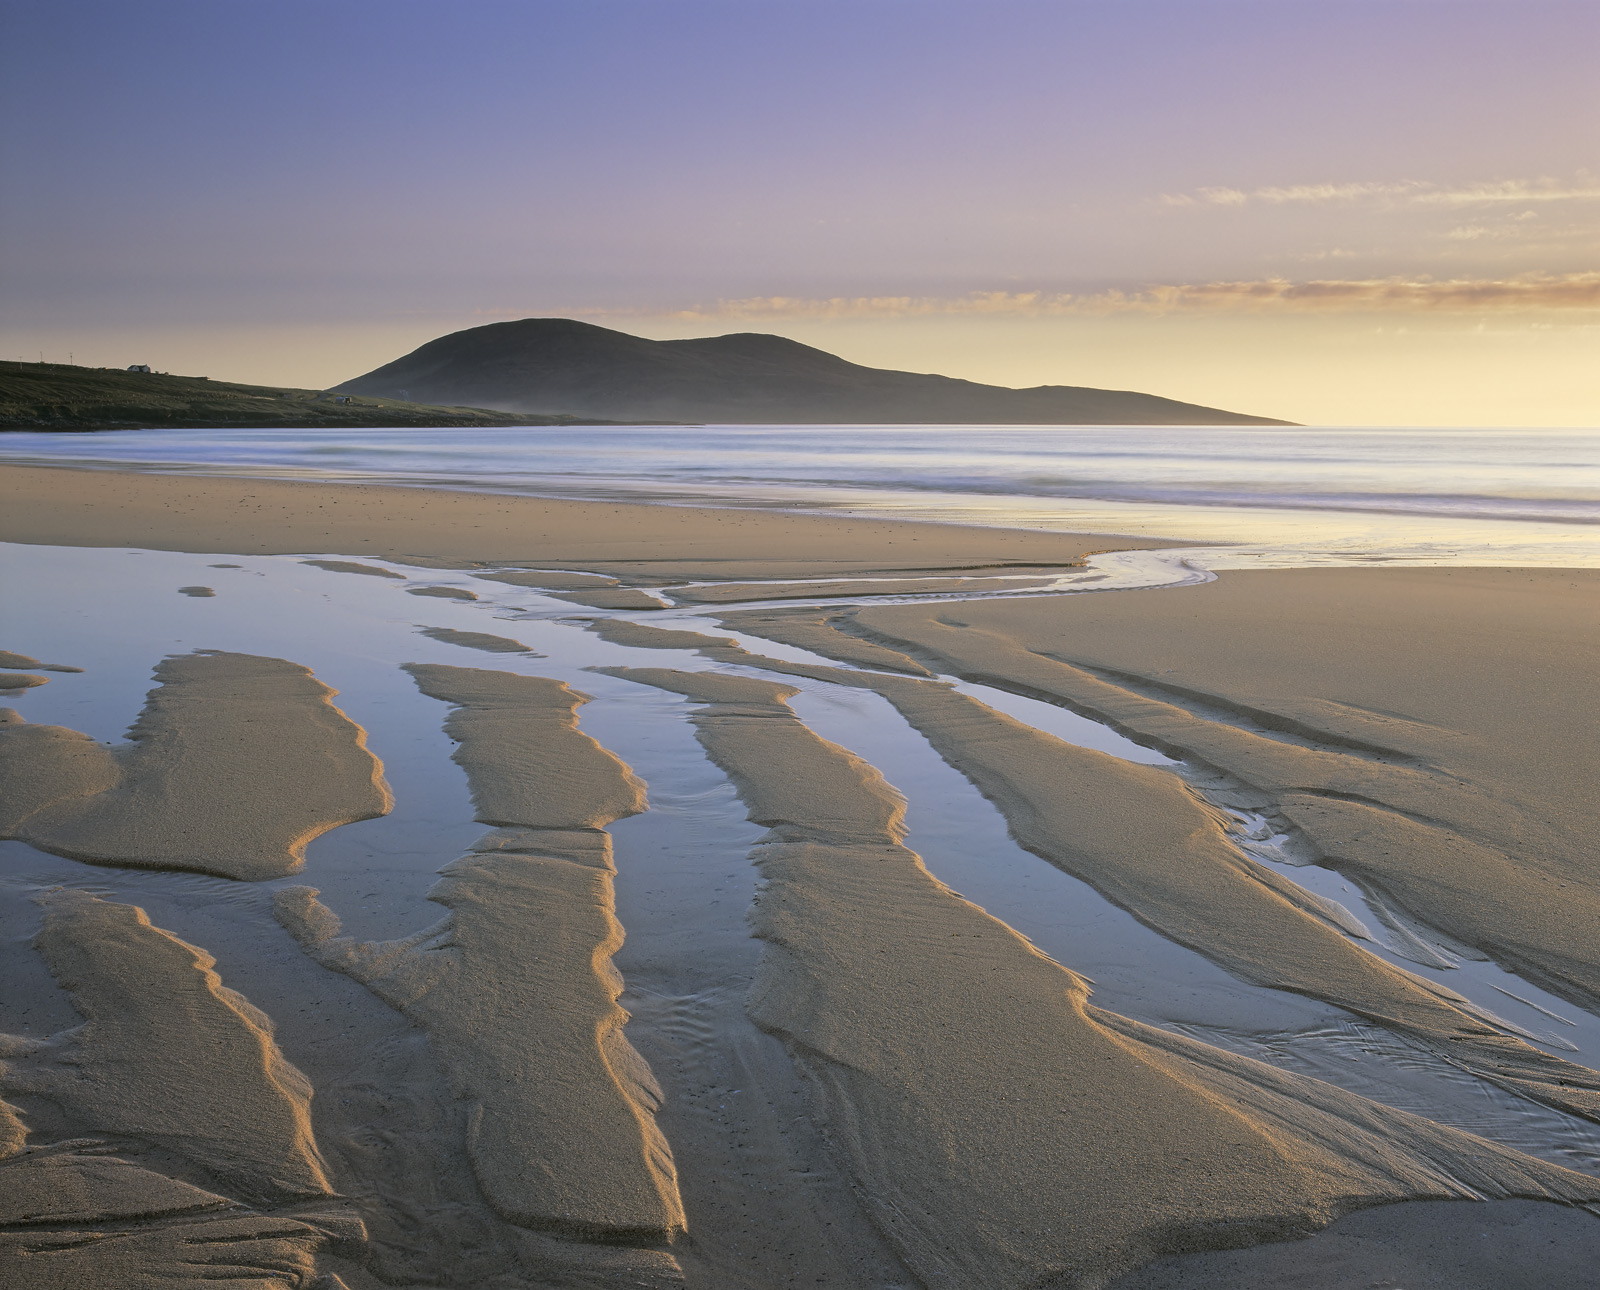 Sand ripples of amazing size and depth are ripped up by the receding tide at Traigh Mhor leaving strong and distinctive patterns...